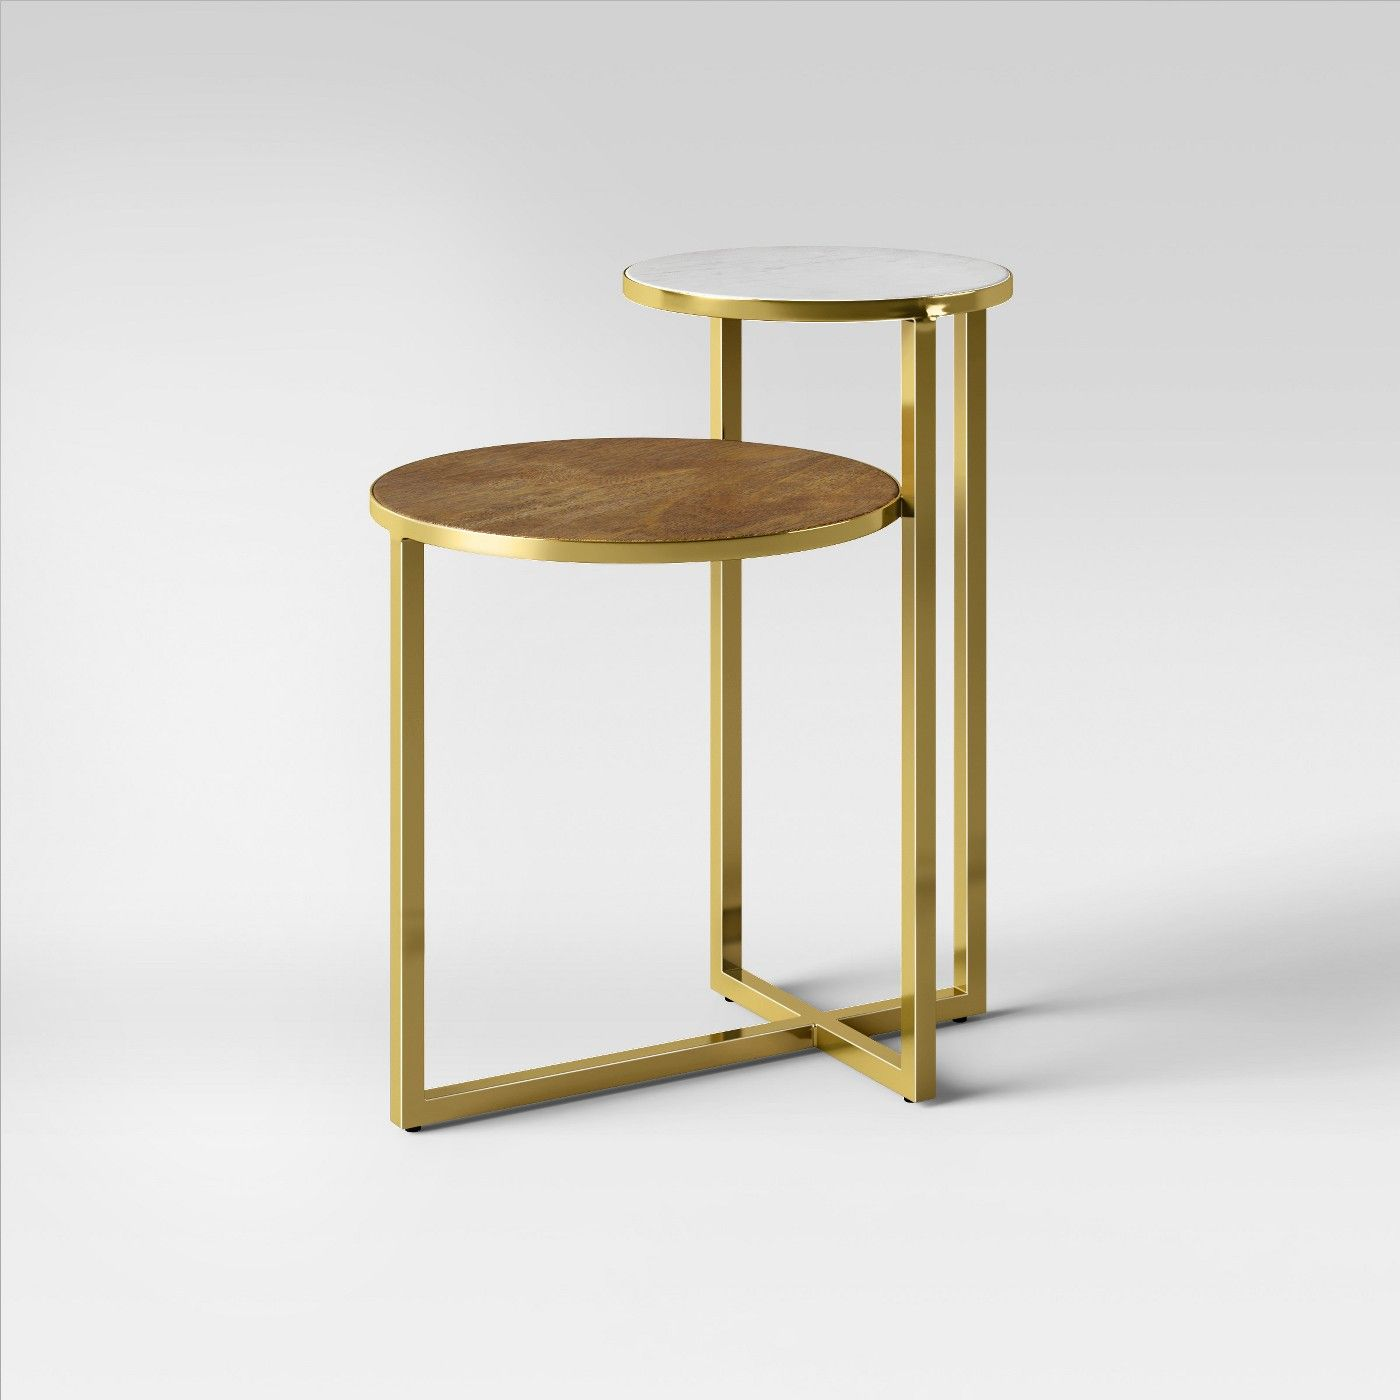 Mixed Material Marble Metal Accent Table Gold Project 62 Image 2 Of 3 Metal Accent Table Wood Accent Table Metal End Tables